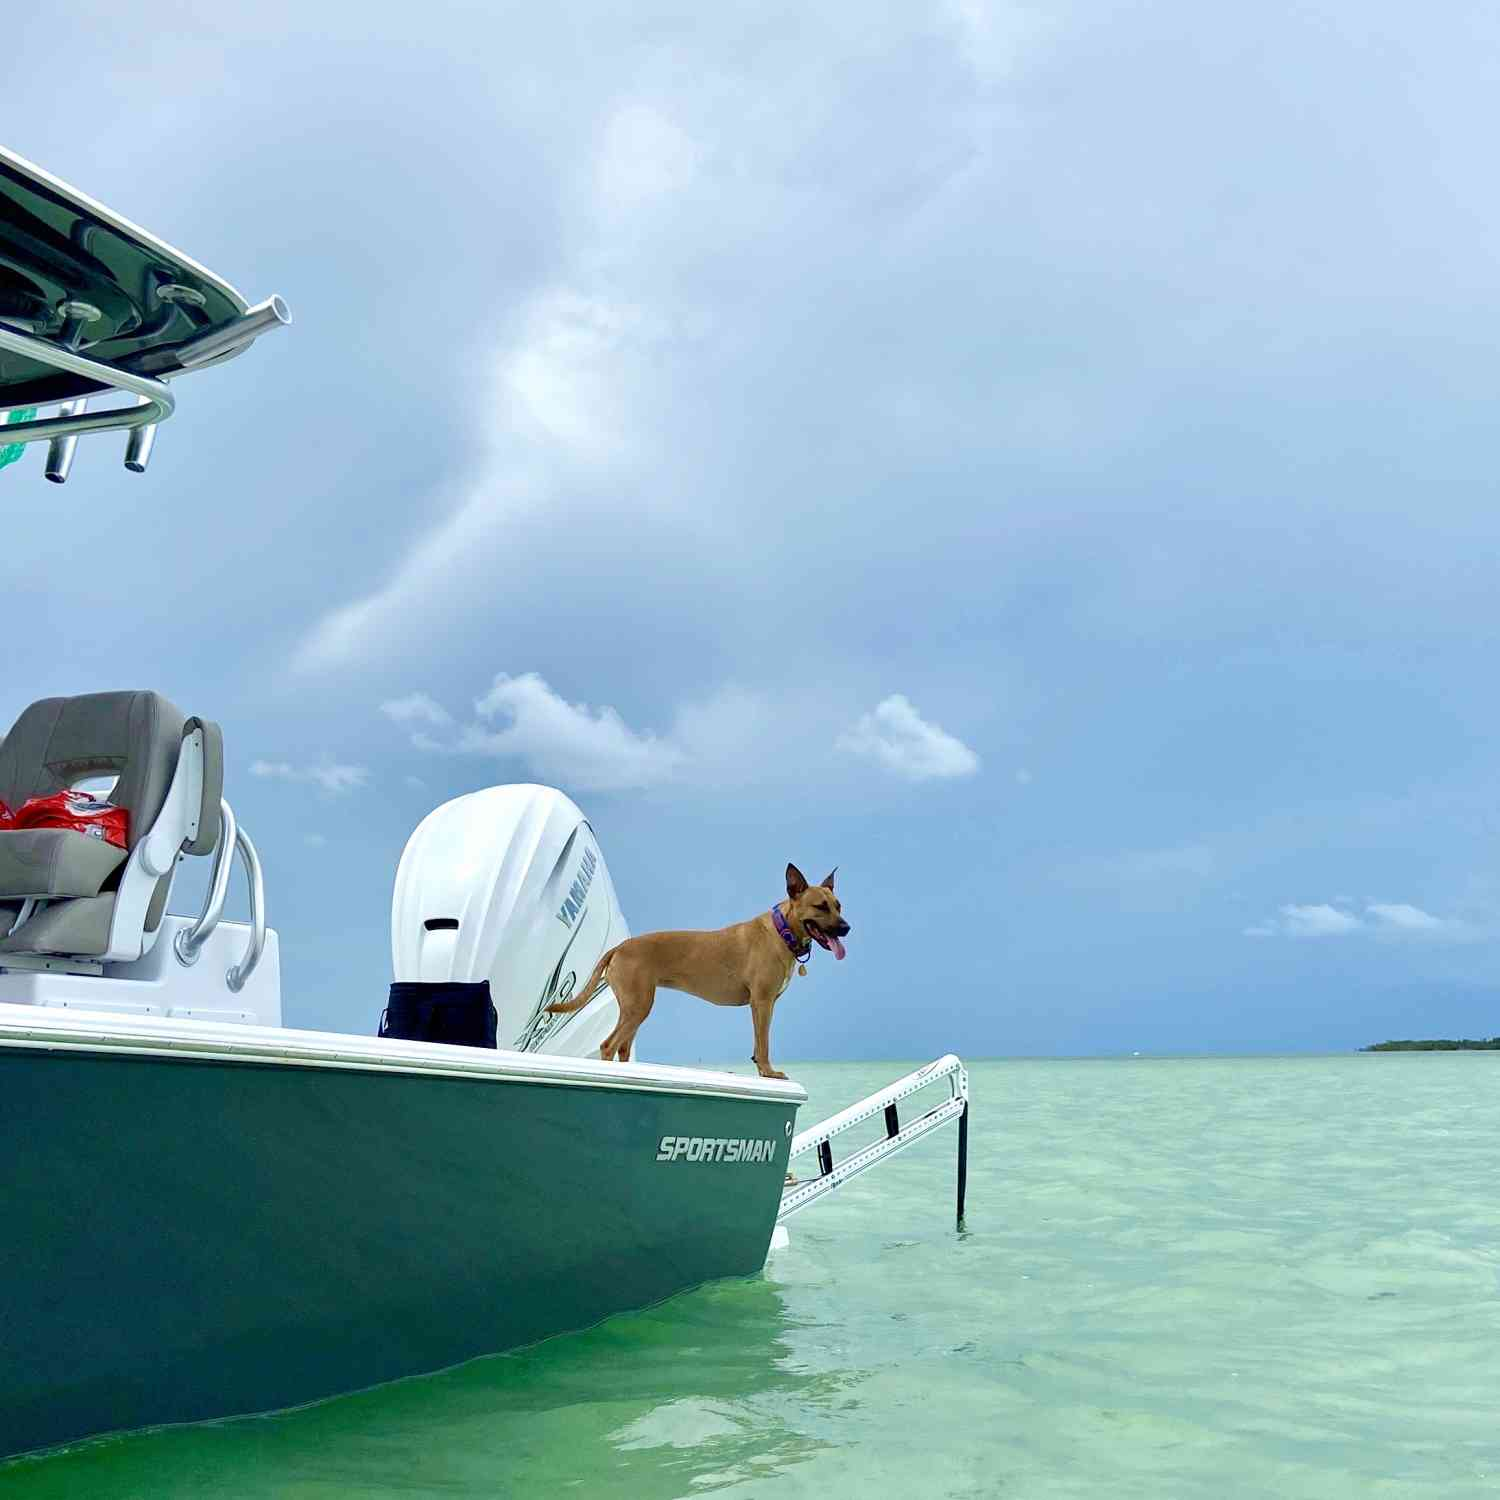 Title: Backyard Blues - On board their Sportsman Masters 267OE Bay Boat - Location: Remote Sandbar off Key West called CoCo Key. Participating in the Photo Contest #SportsmanSeptember2020